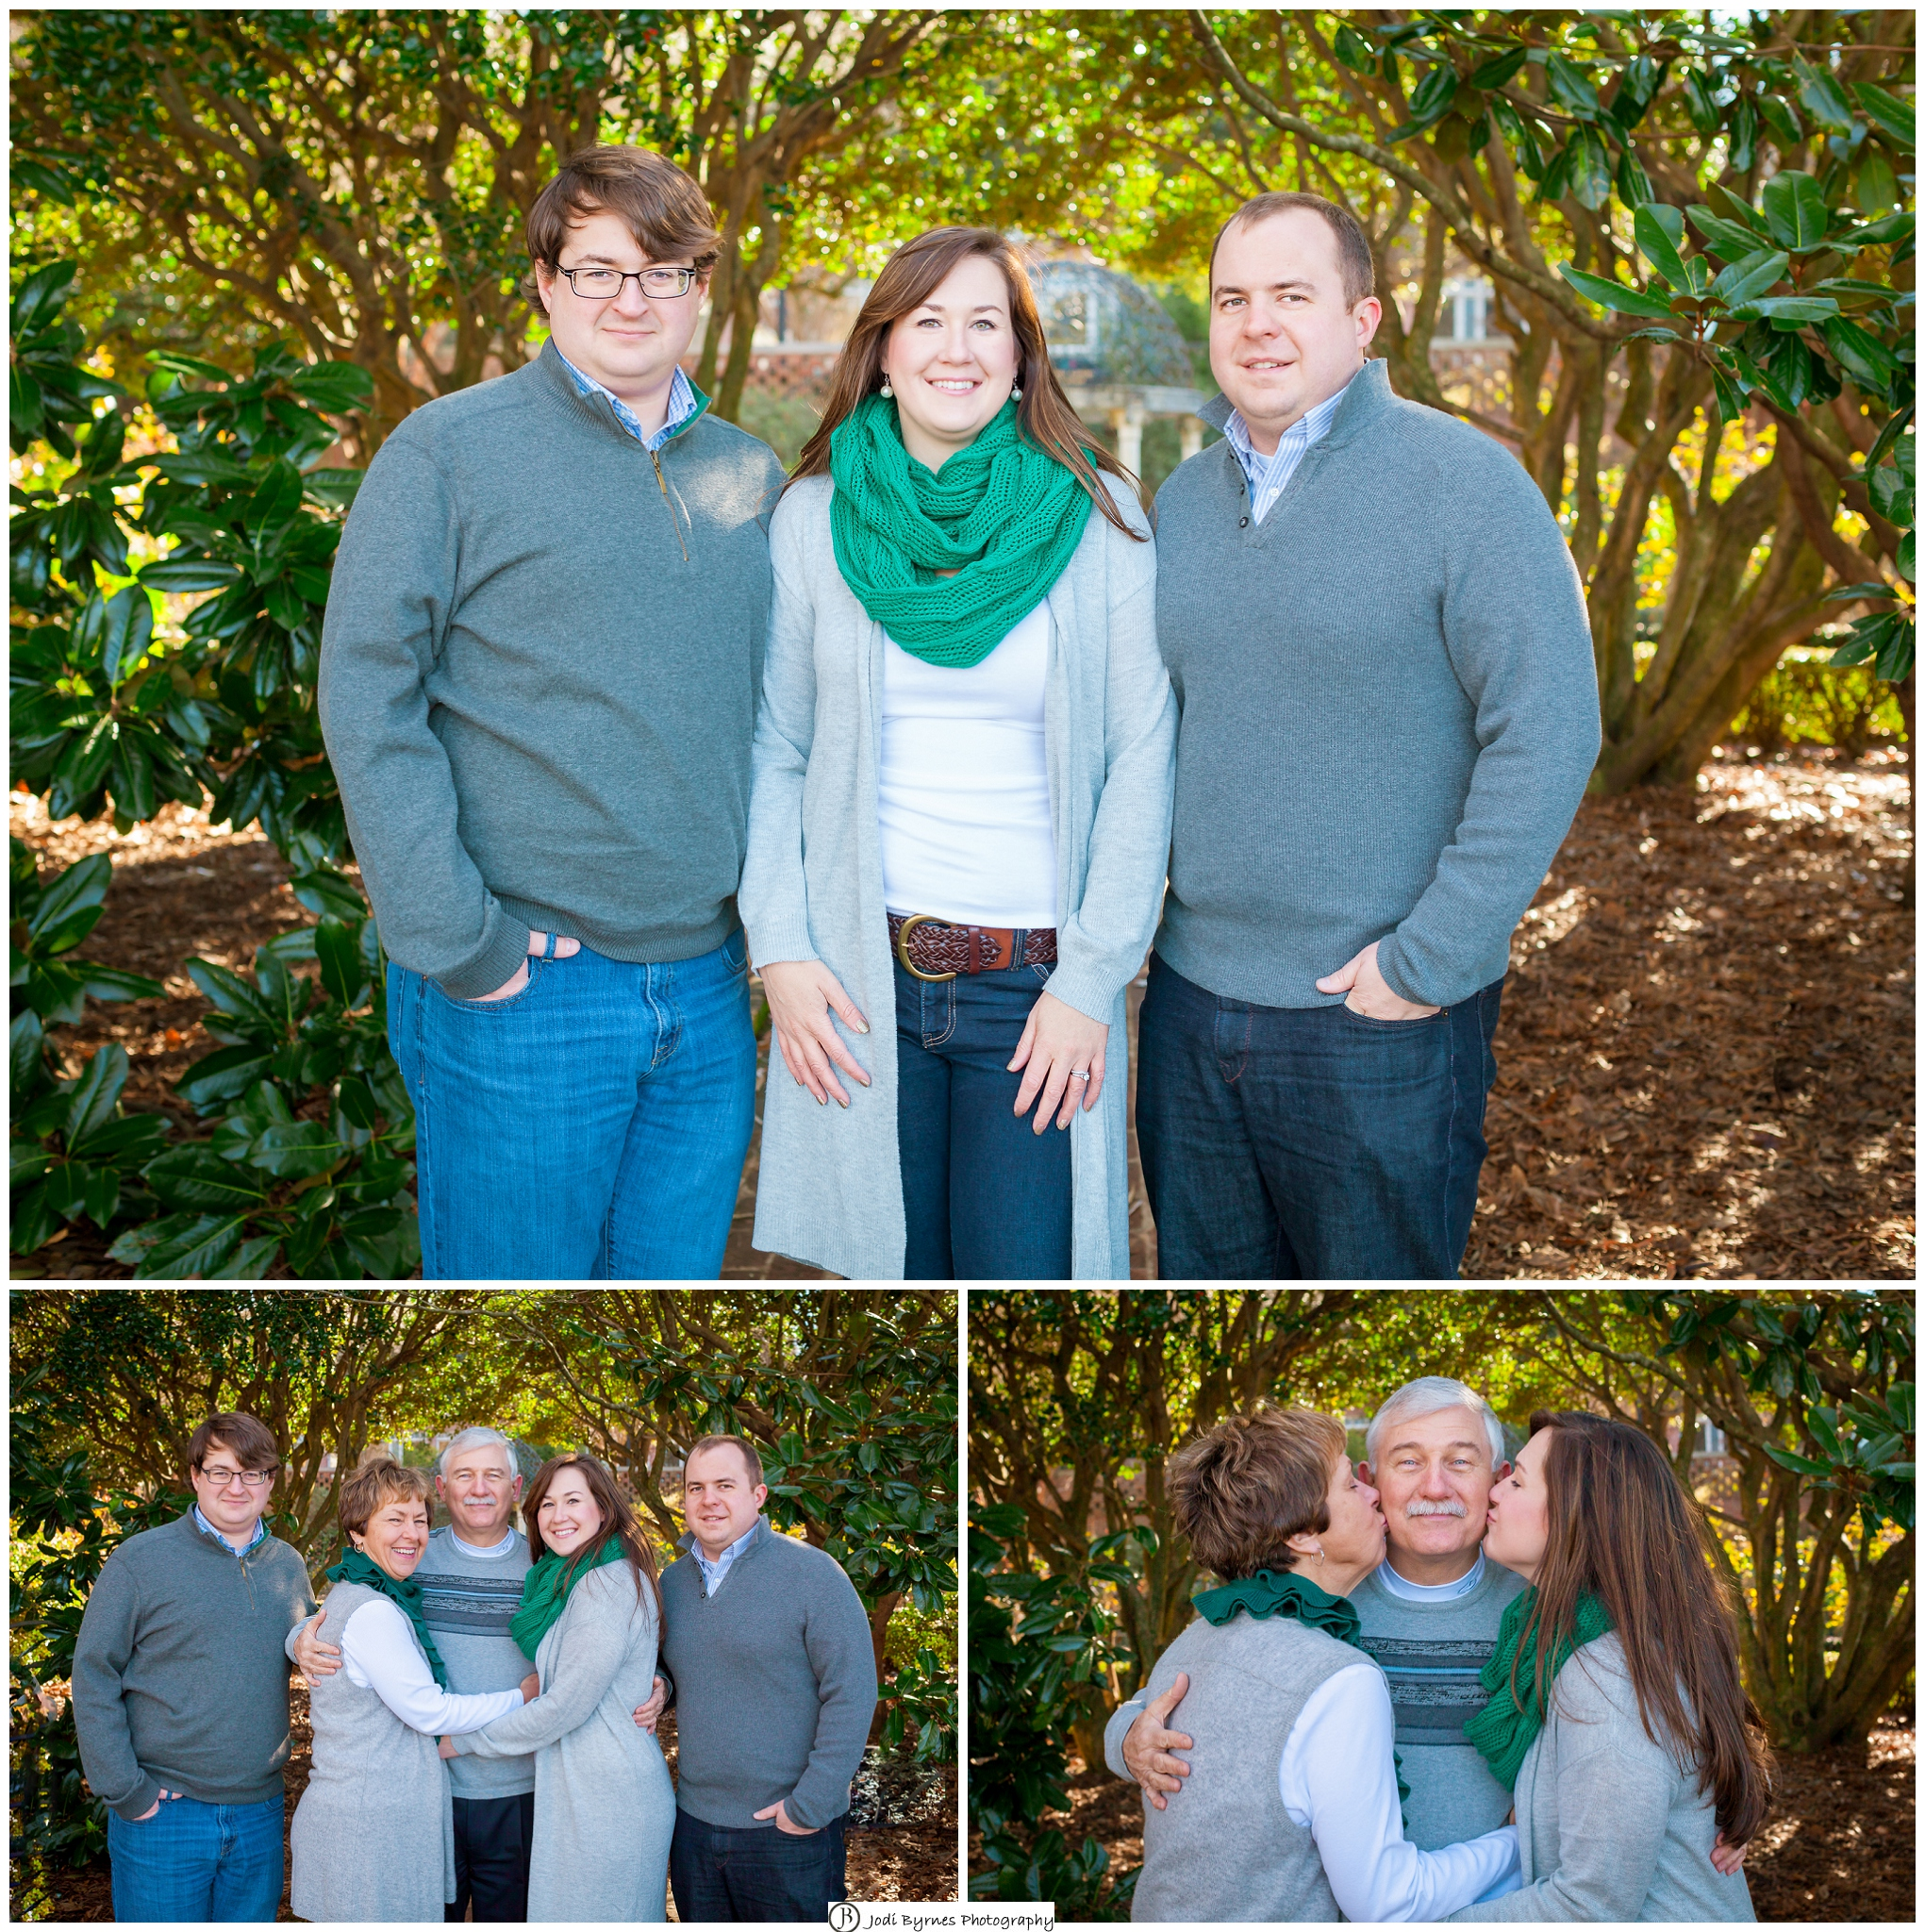 Furman portrait session